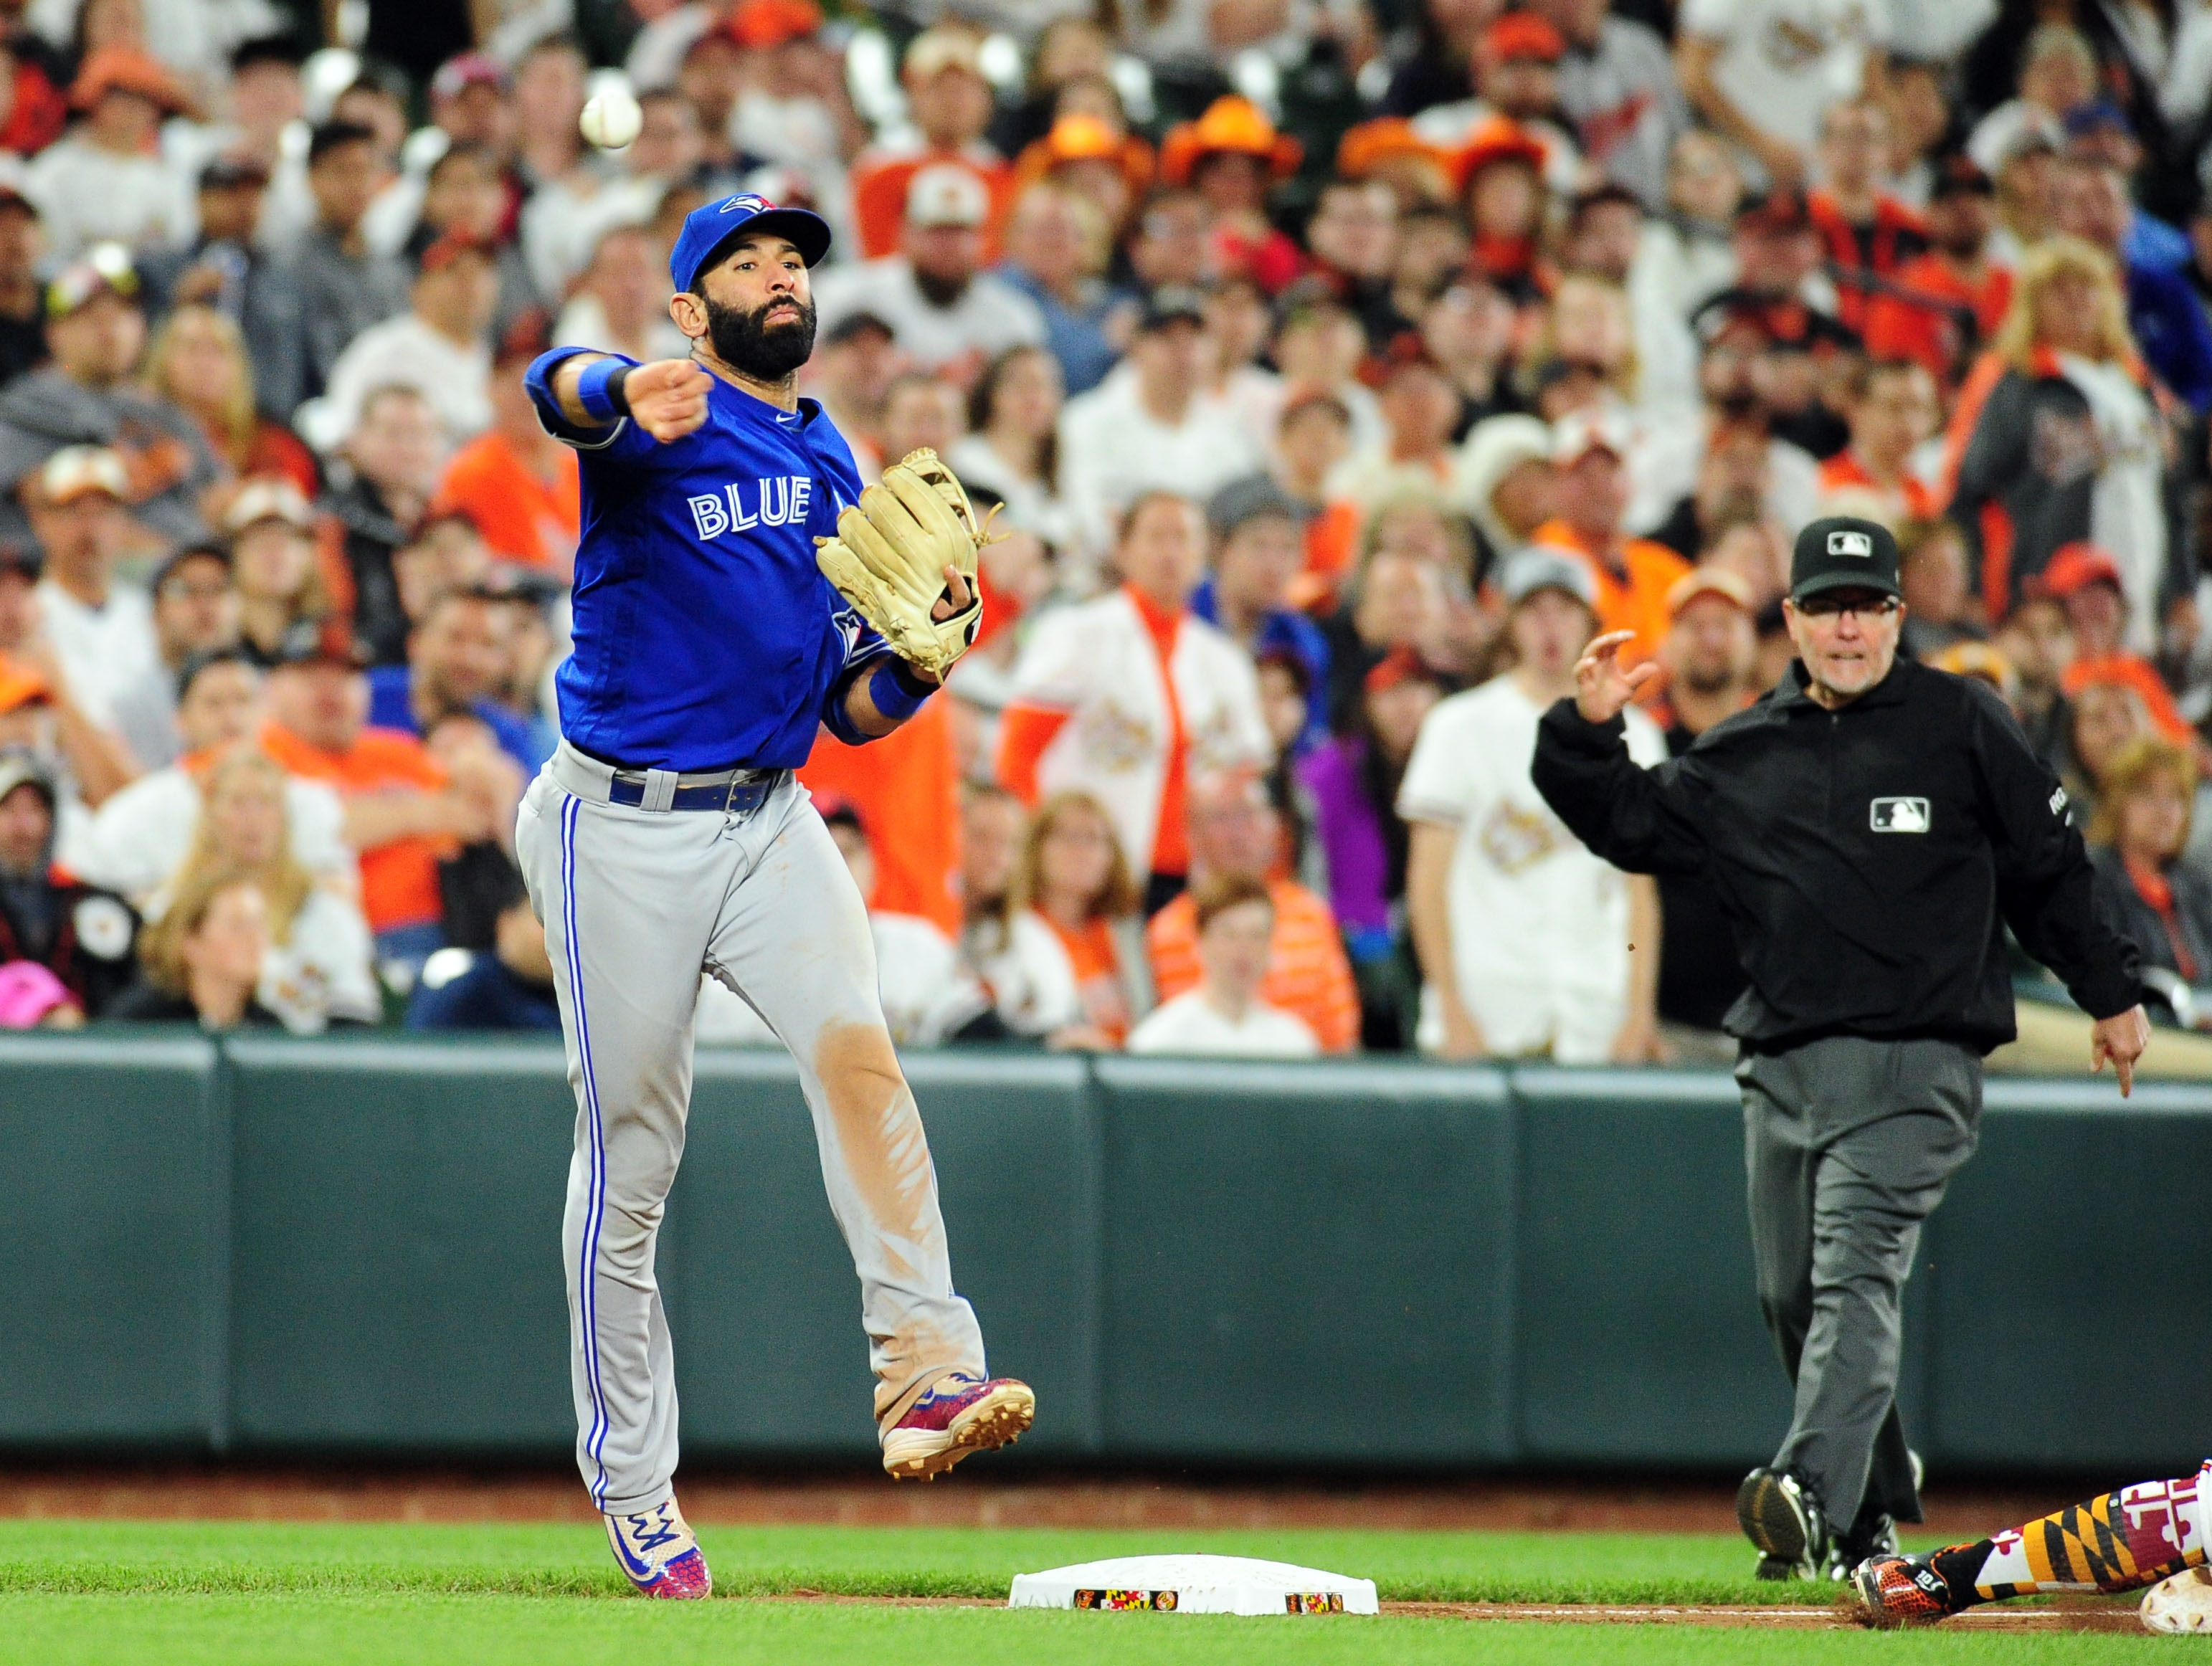 10067761-mlb-toronto-blue-jays-at-baltimore-orioles